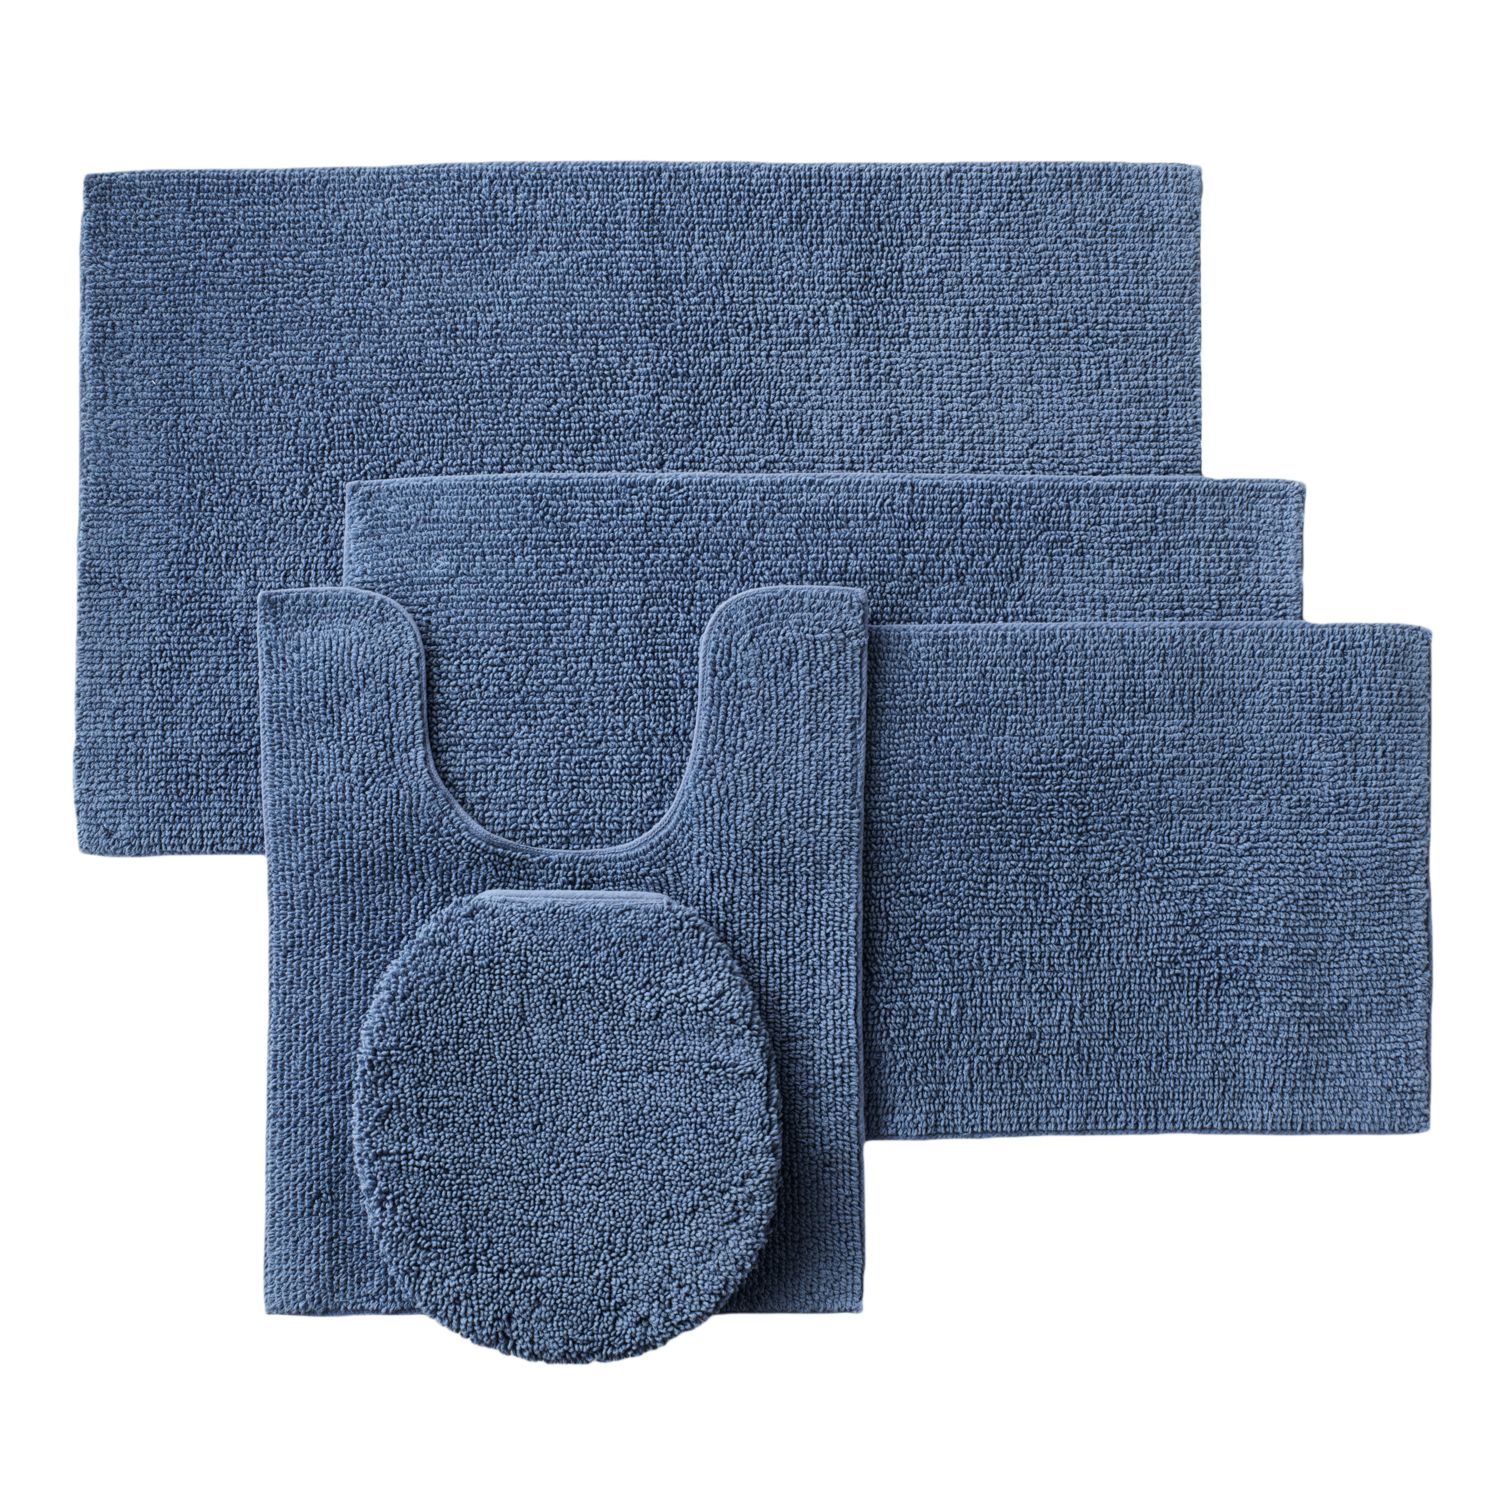 Blue And White Bathroom Rugs Free New Royal Blue White